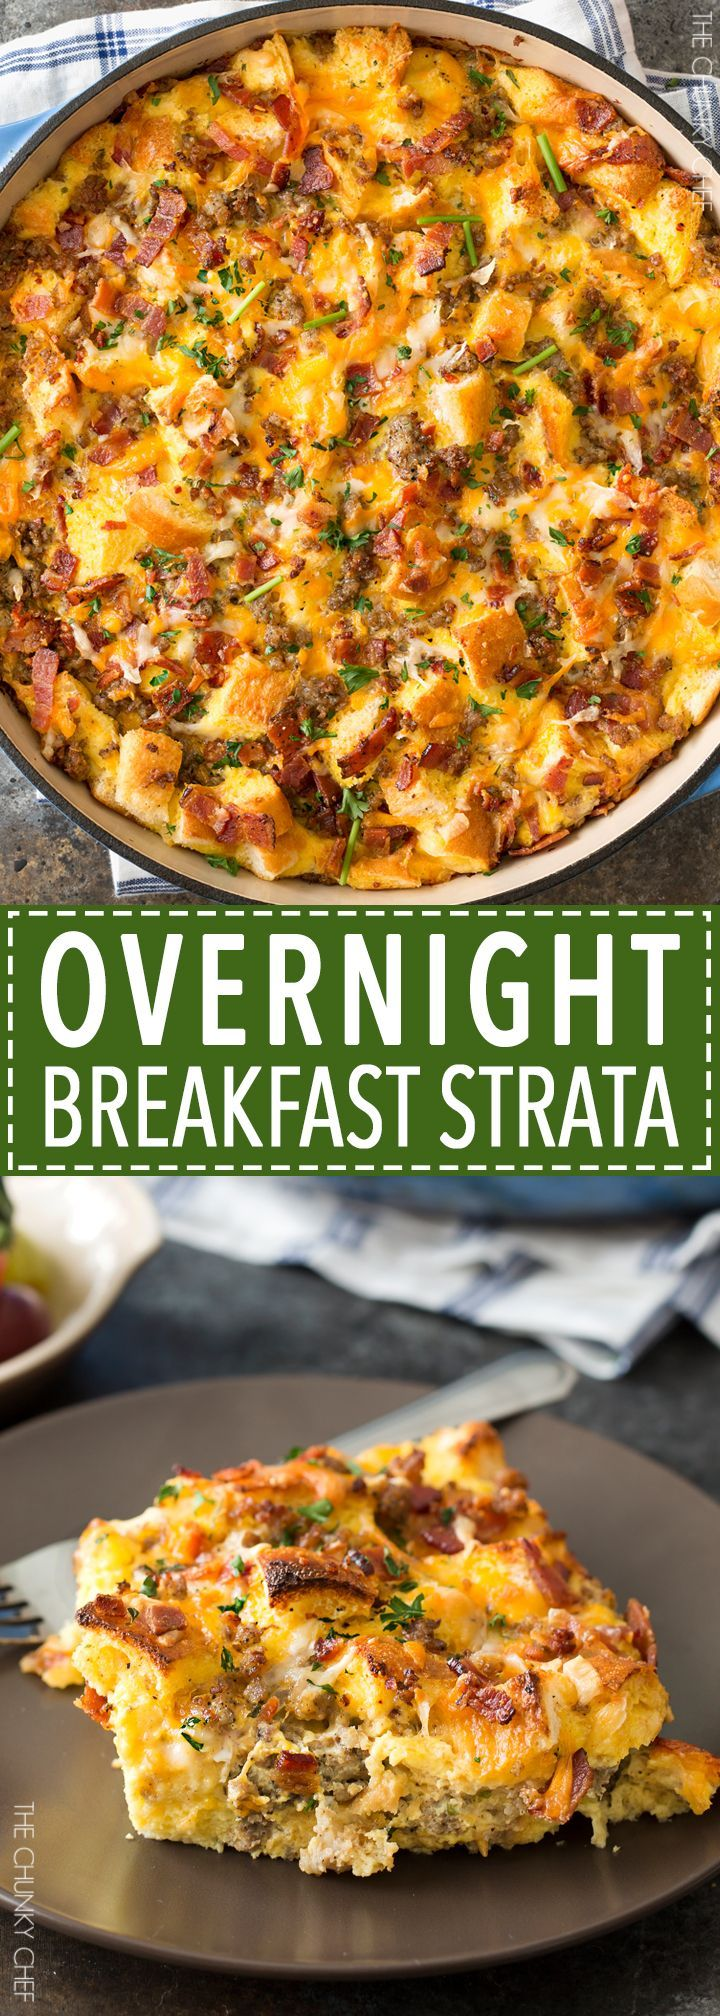 Overnight Breakfast Strata | This breakfast strata dish is made the night before, refrigerated overnight, then baked to bubbly, cheesy perfection!